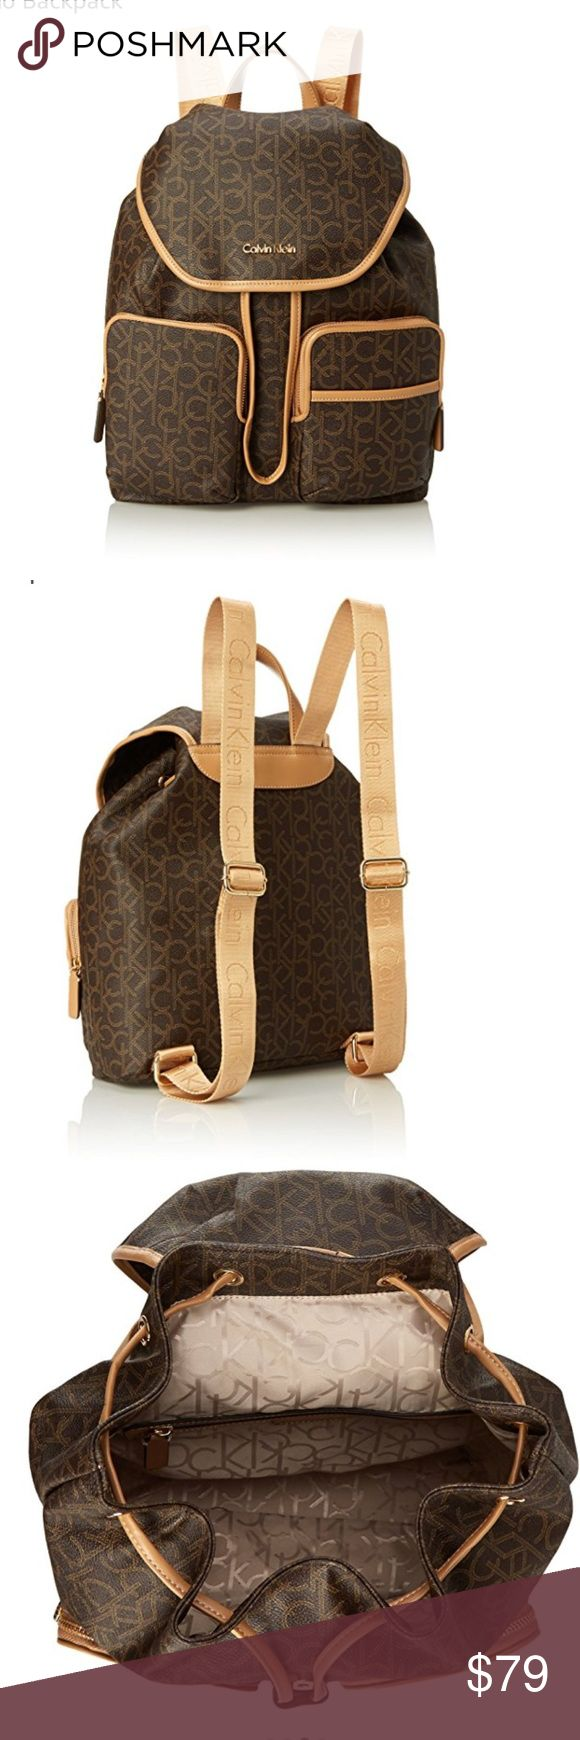 Last chance Calvin Klein backpack new Brand-new Calvin Klein backpack perfect for traveling or just for shopping Calvin Klein Bags Backpacks